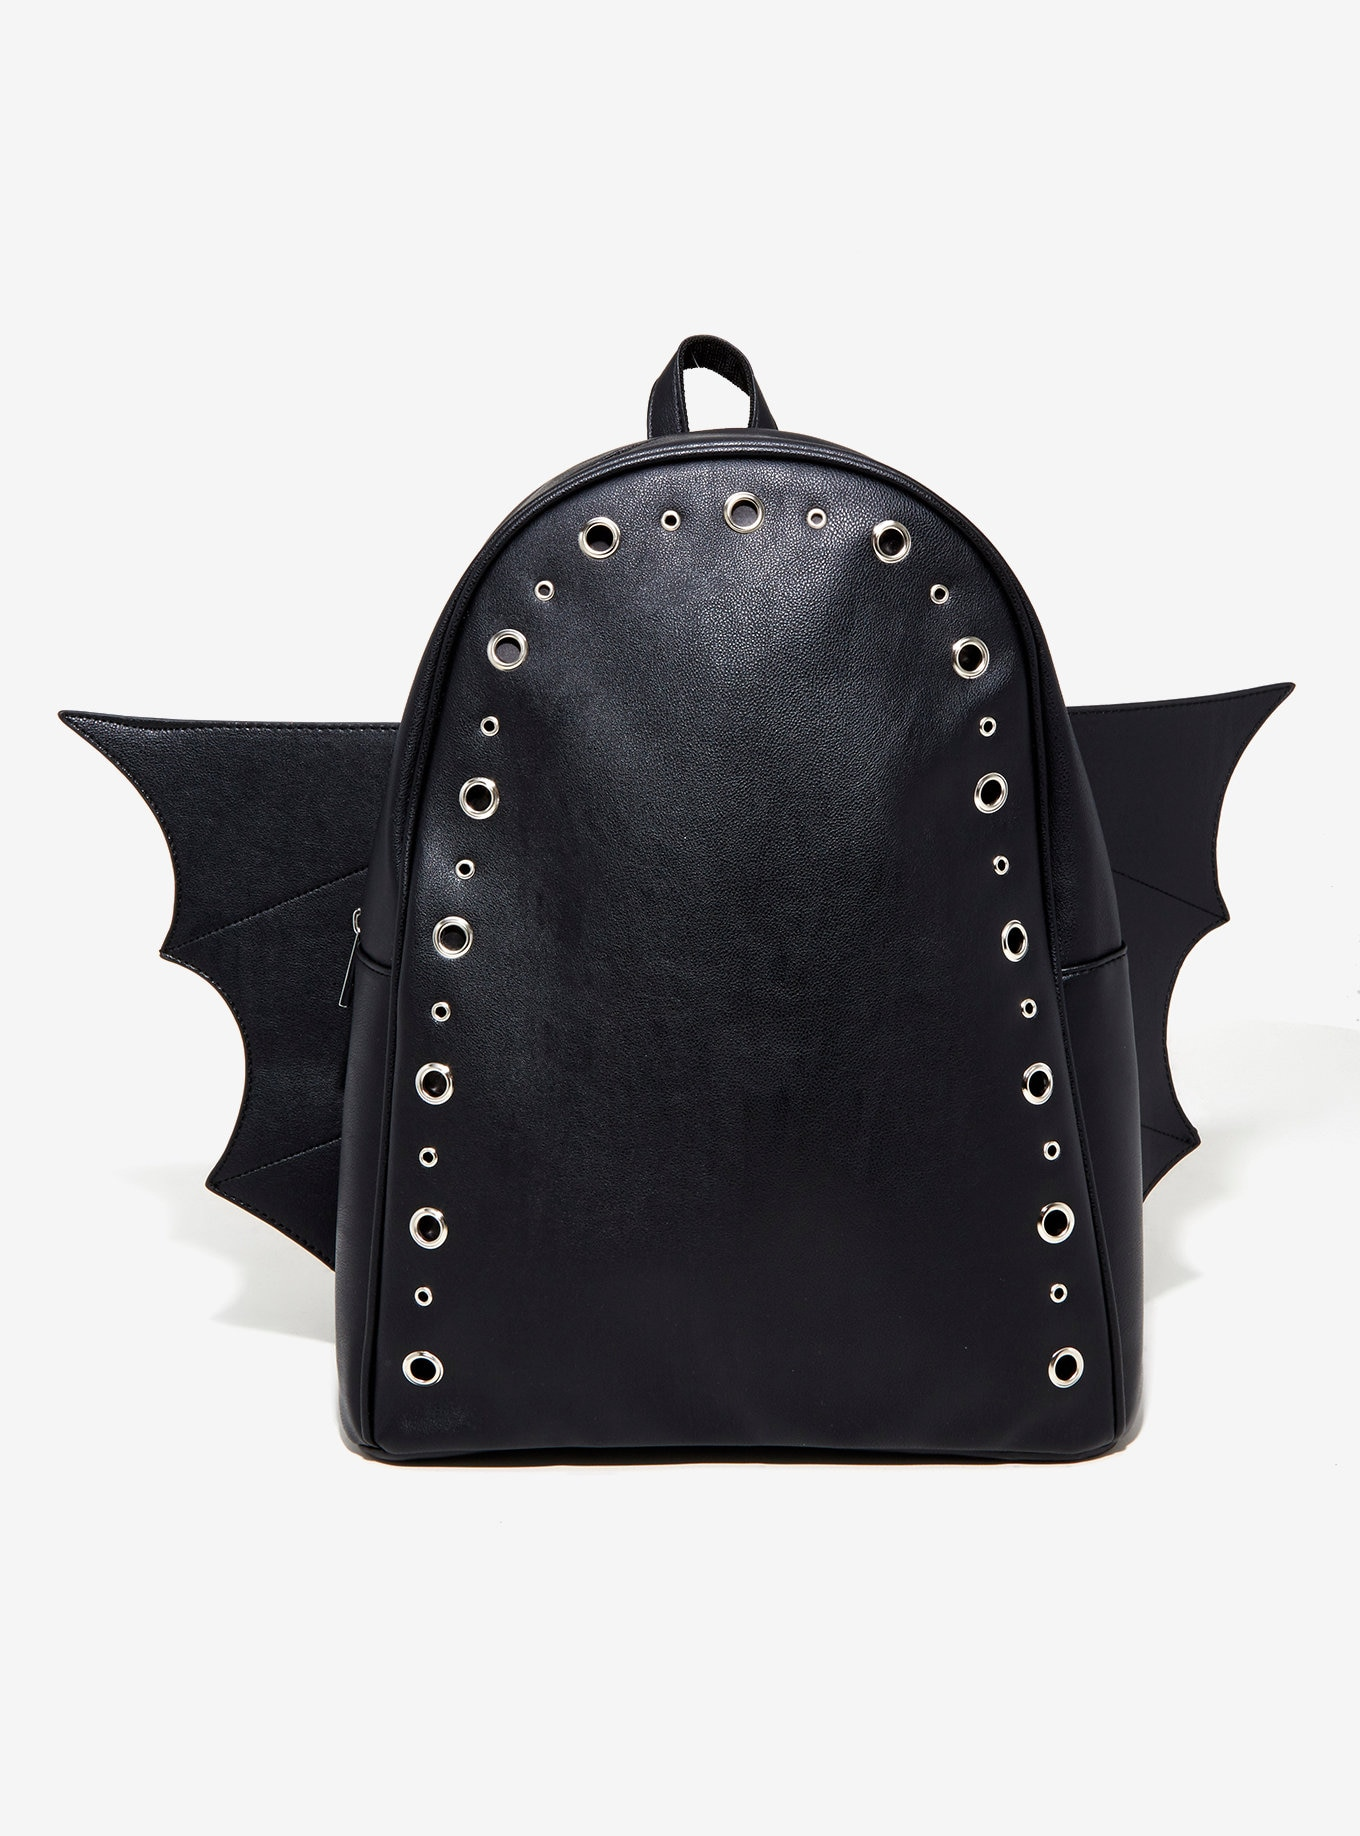 Gothic Black Bat Backpack Bag